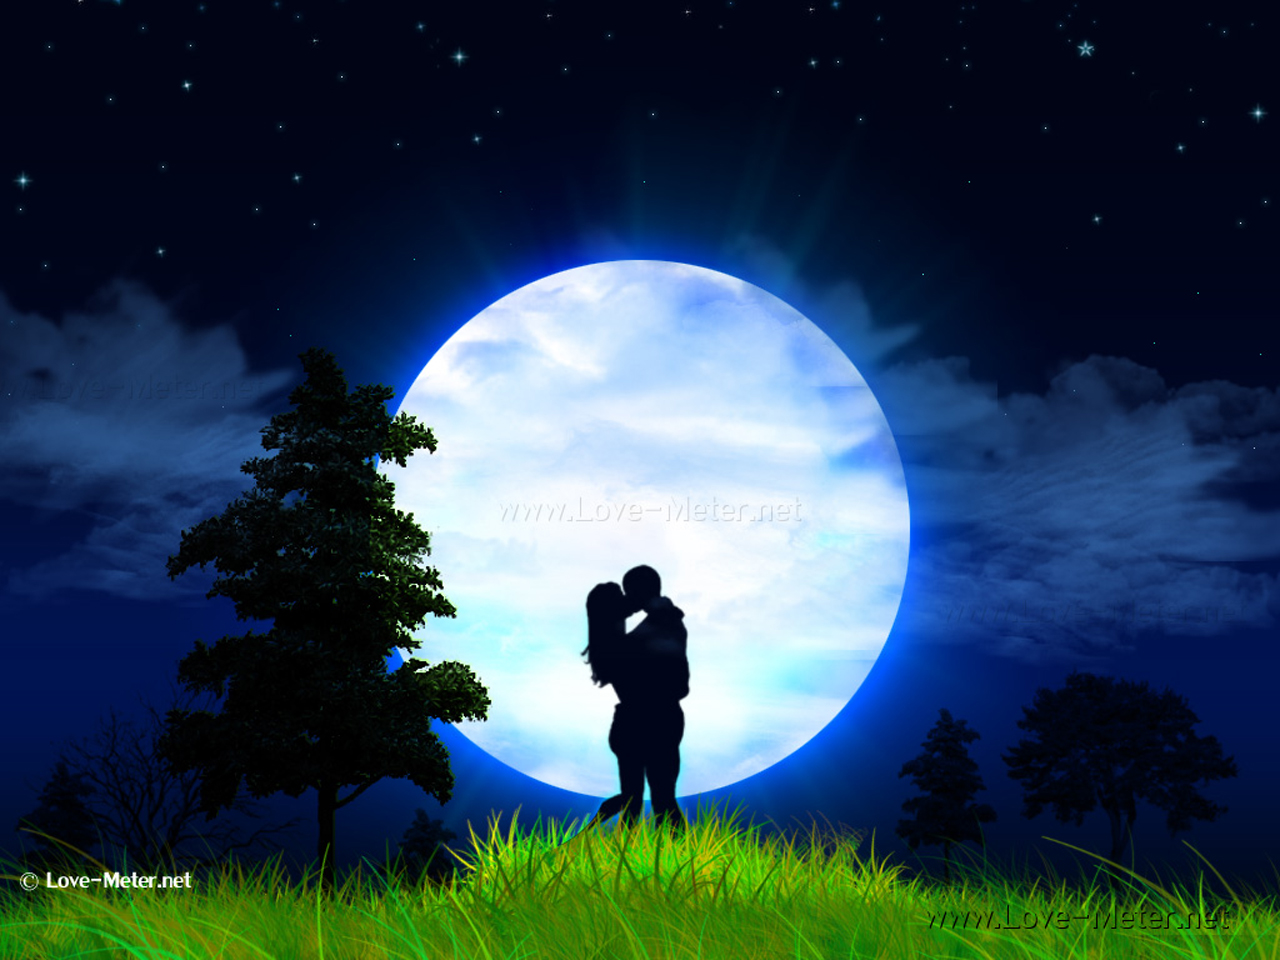 Romantic Love Wallpaper For Gf : Beautiful Romantic Moonlight Wallpapers Stunning Mesh